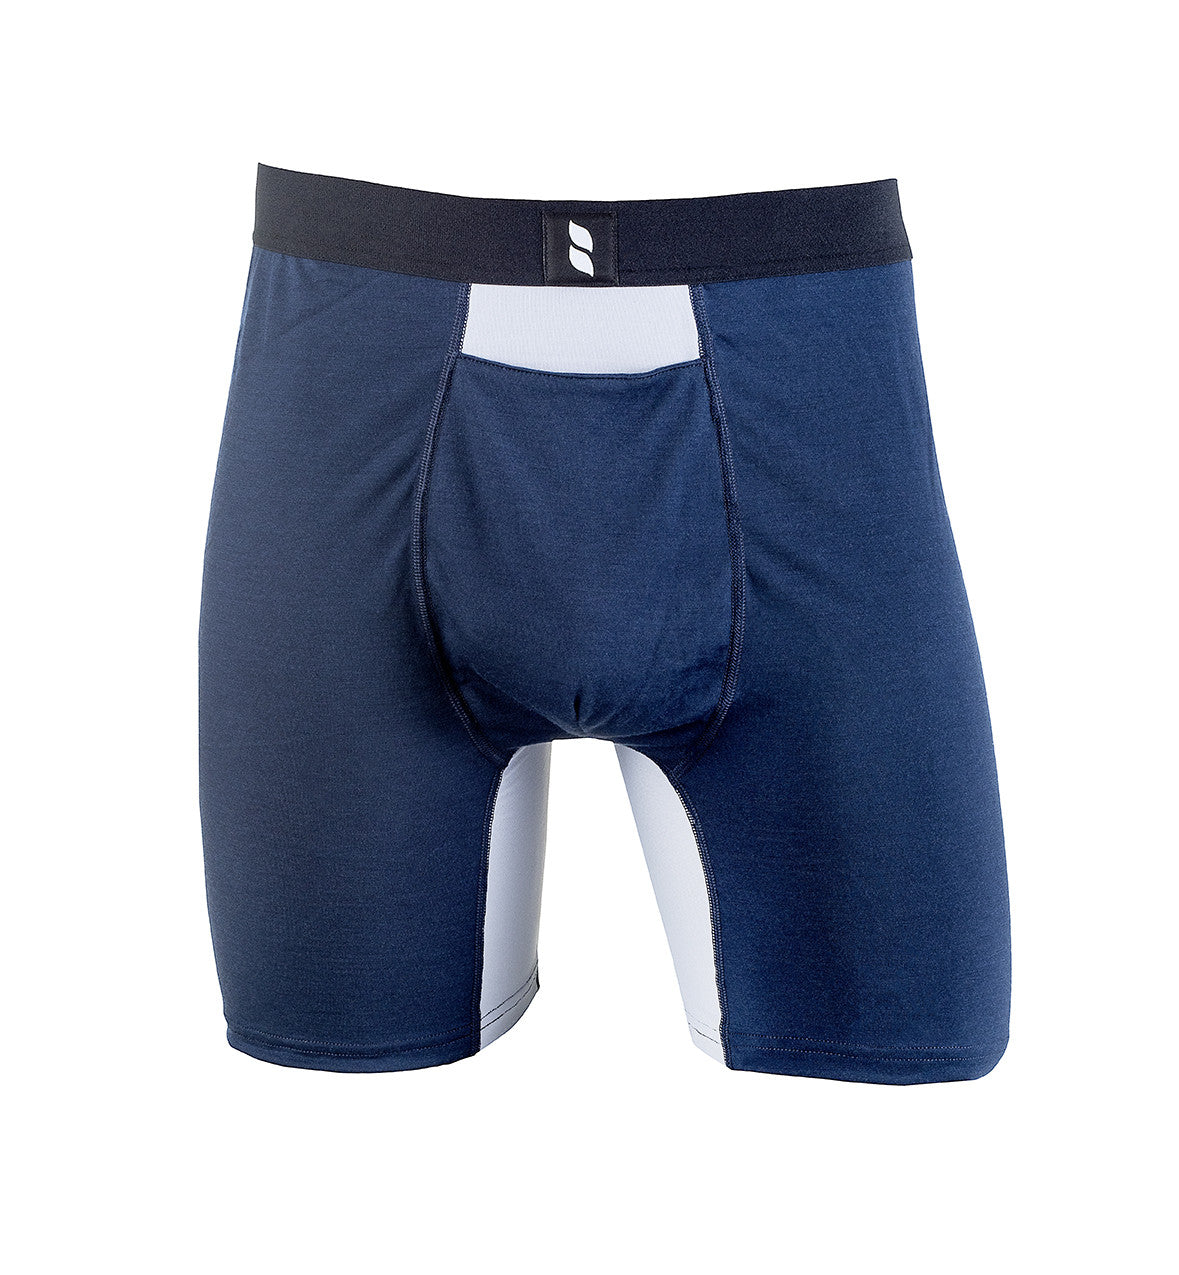 1b3dfe72f9fc Merino Wool Boxer Briefs for Men | Kentwool | Made in the USA – KENTWOOL